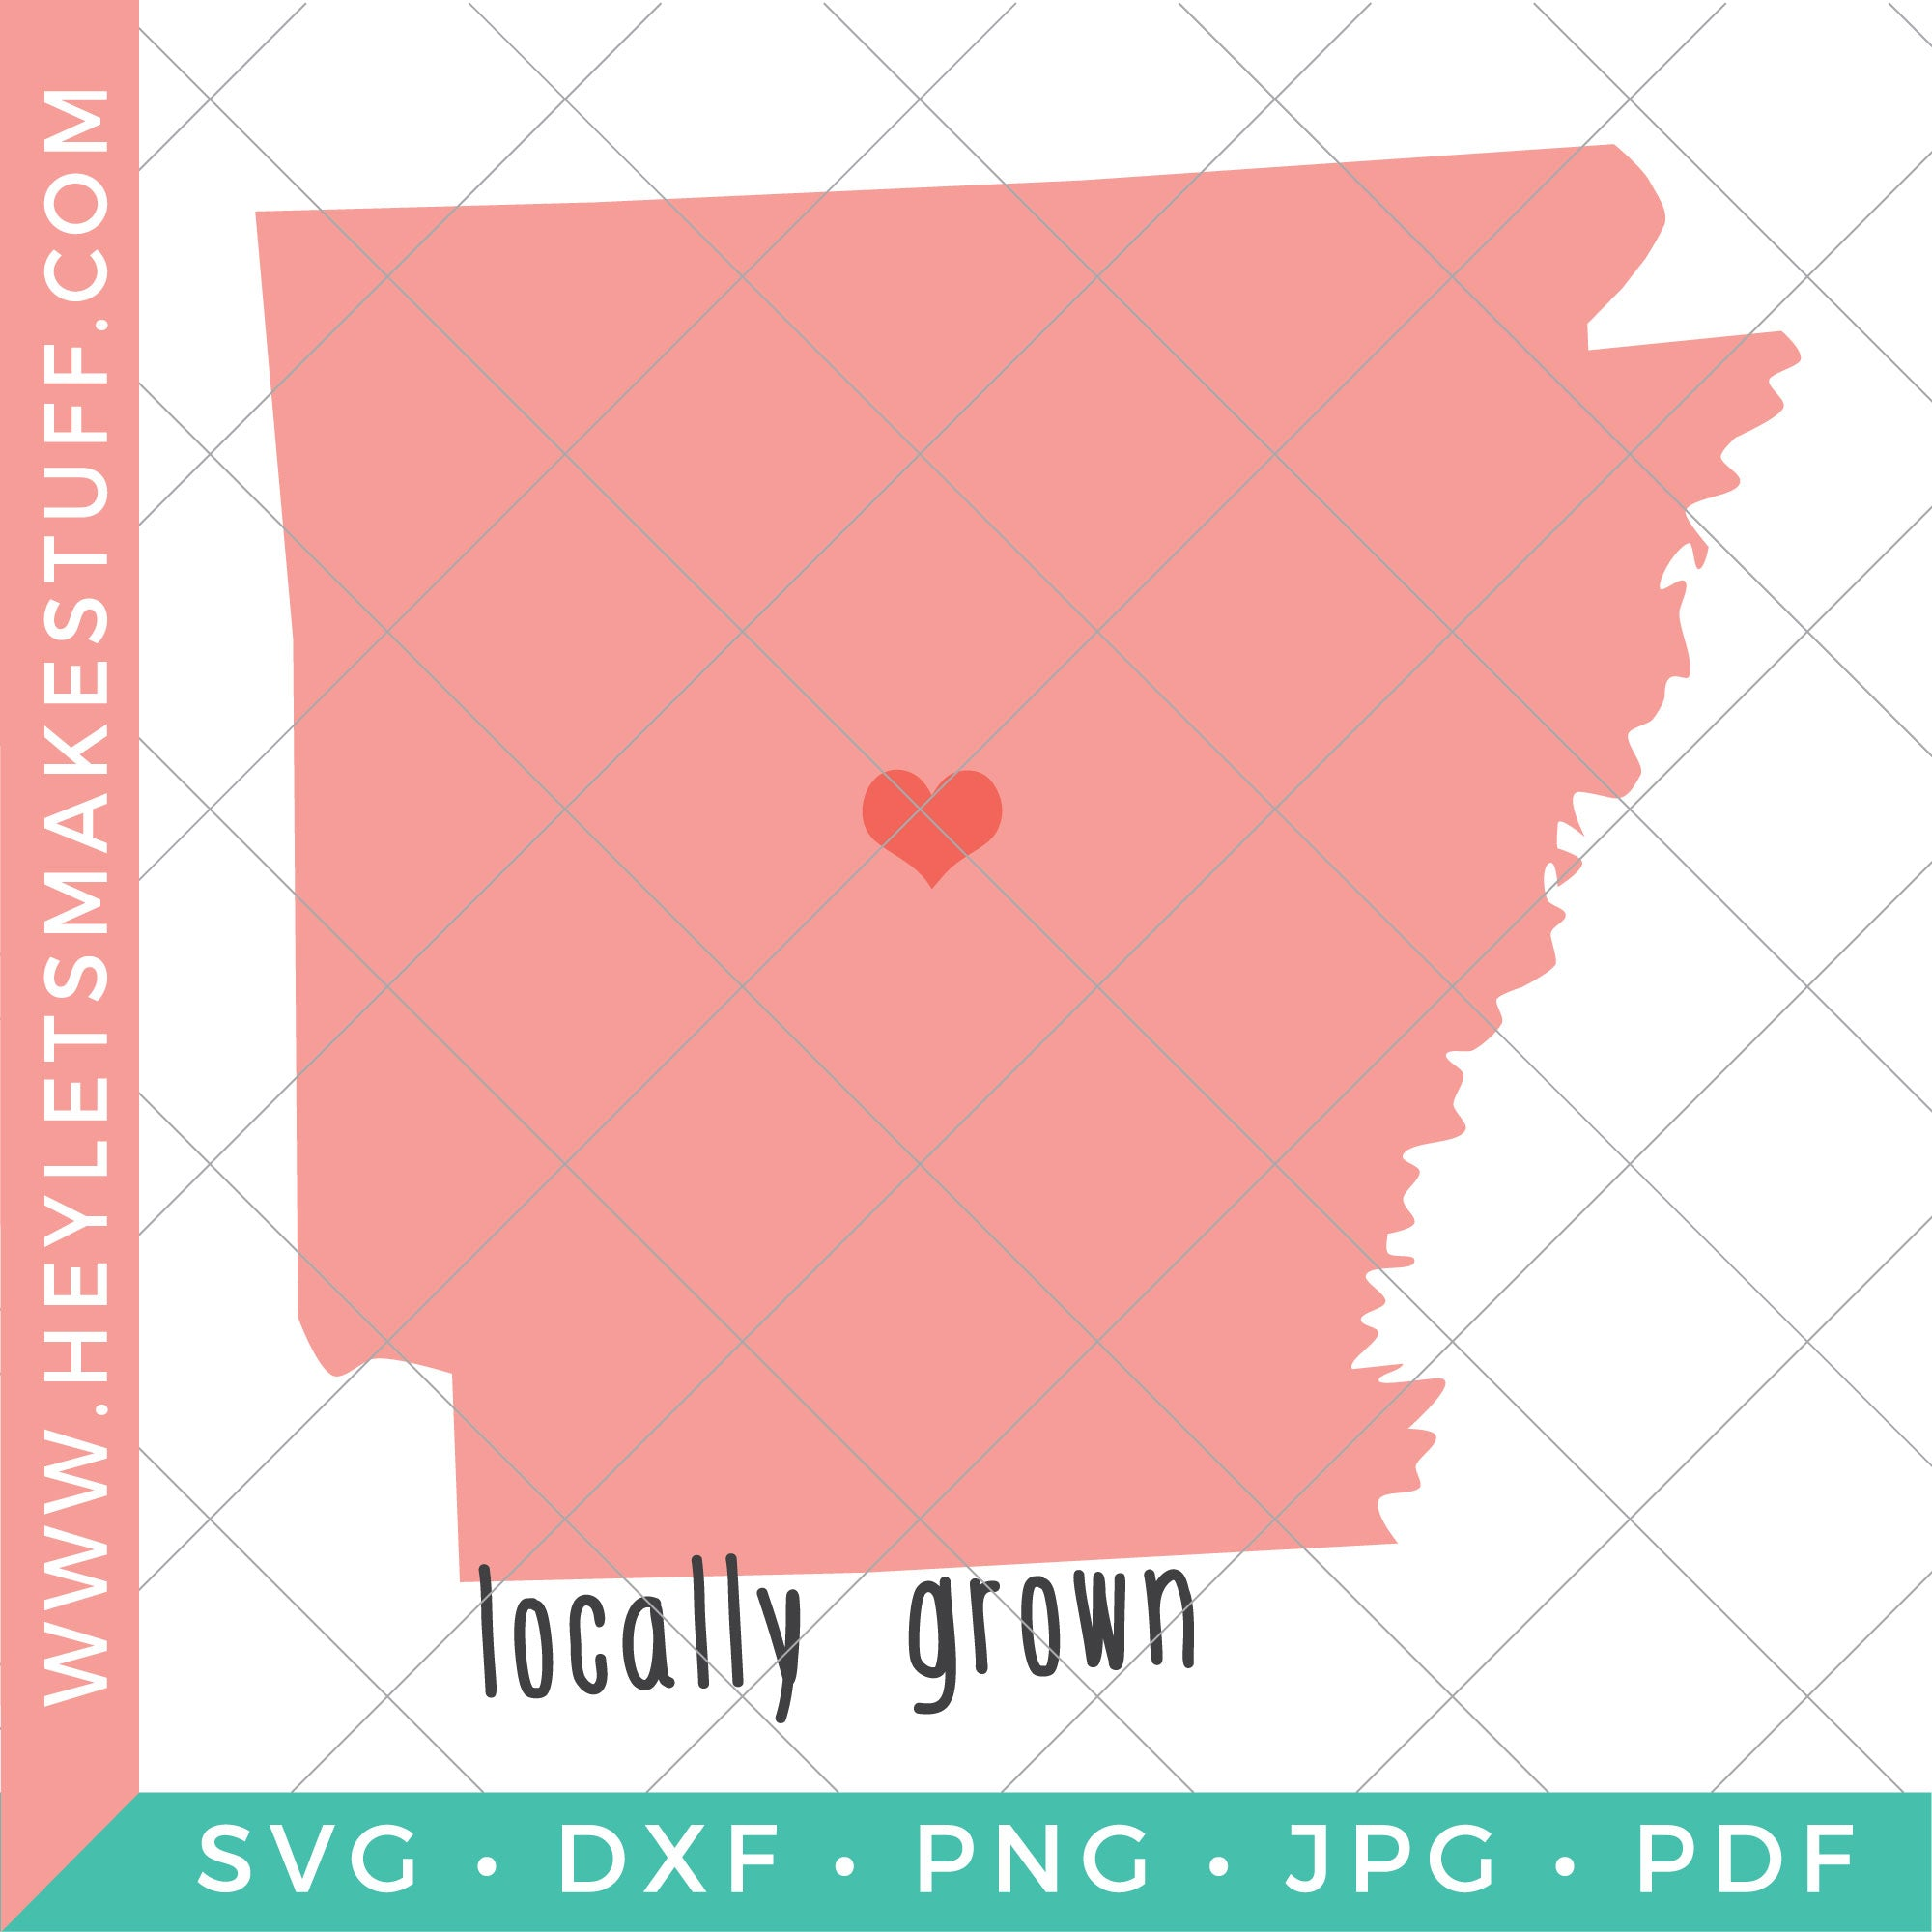 Locally Grown - Arkansas